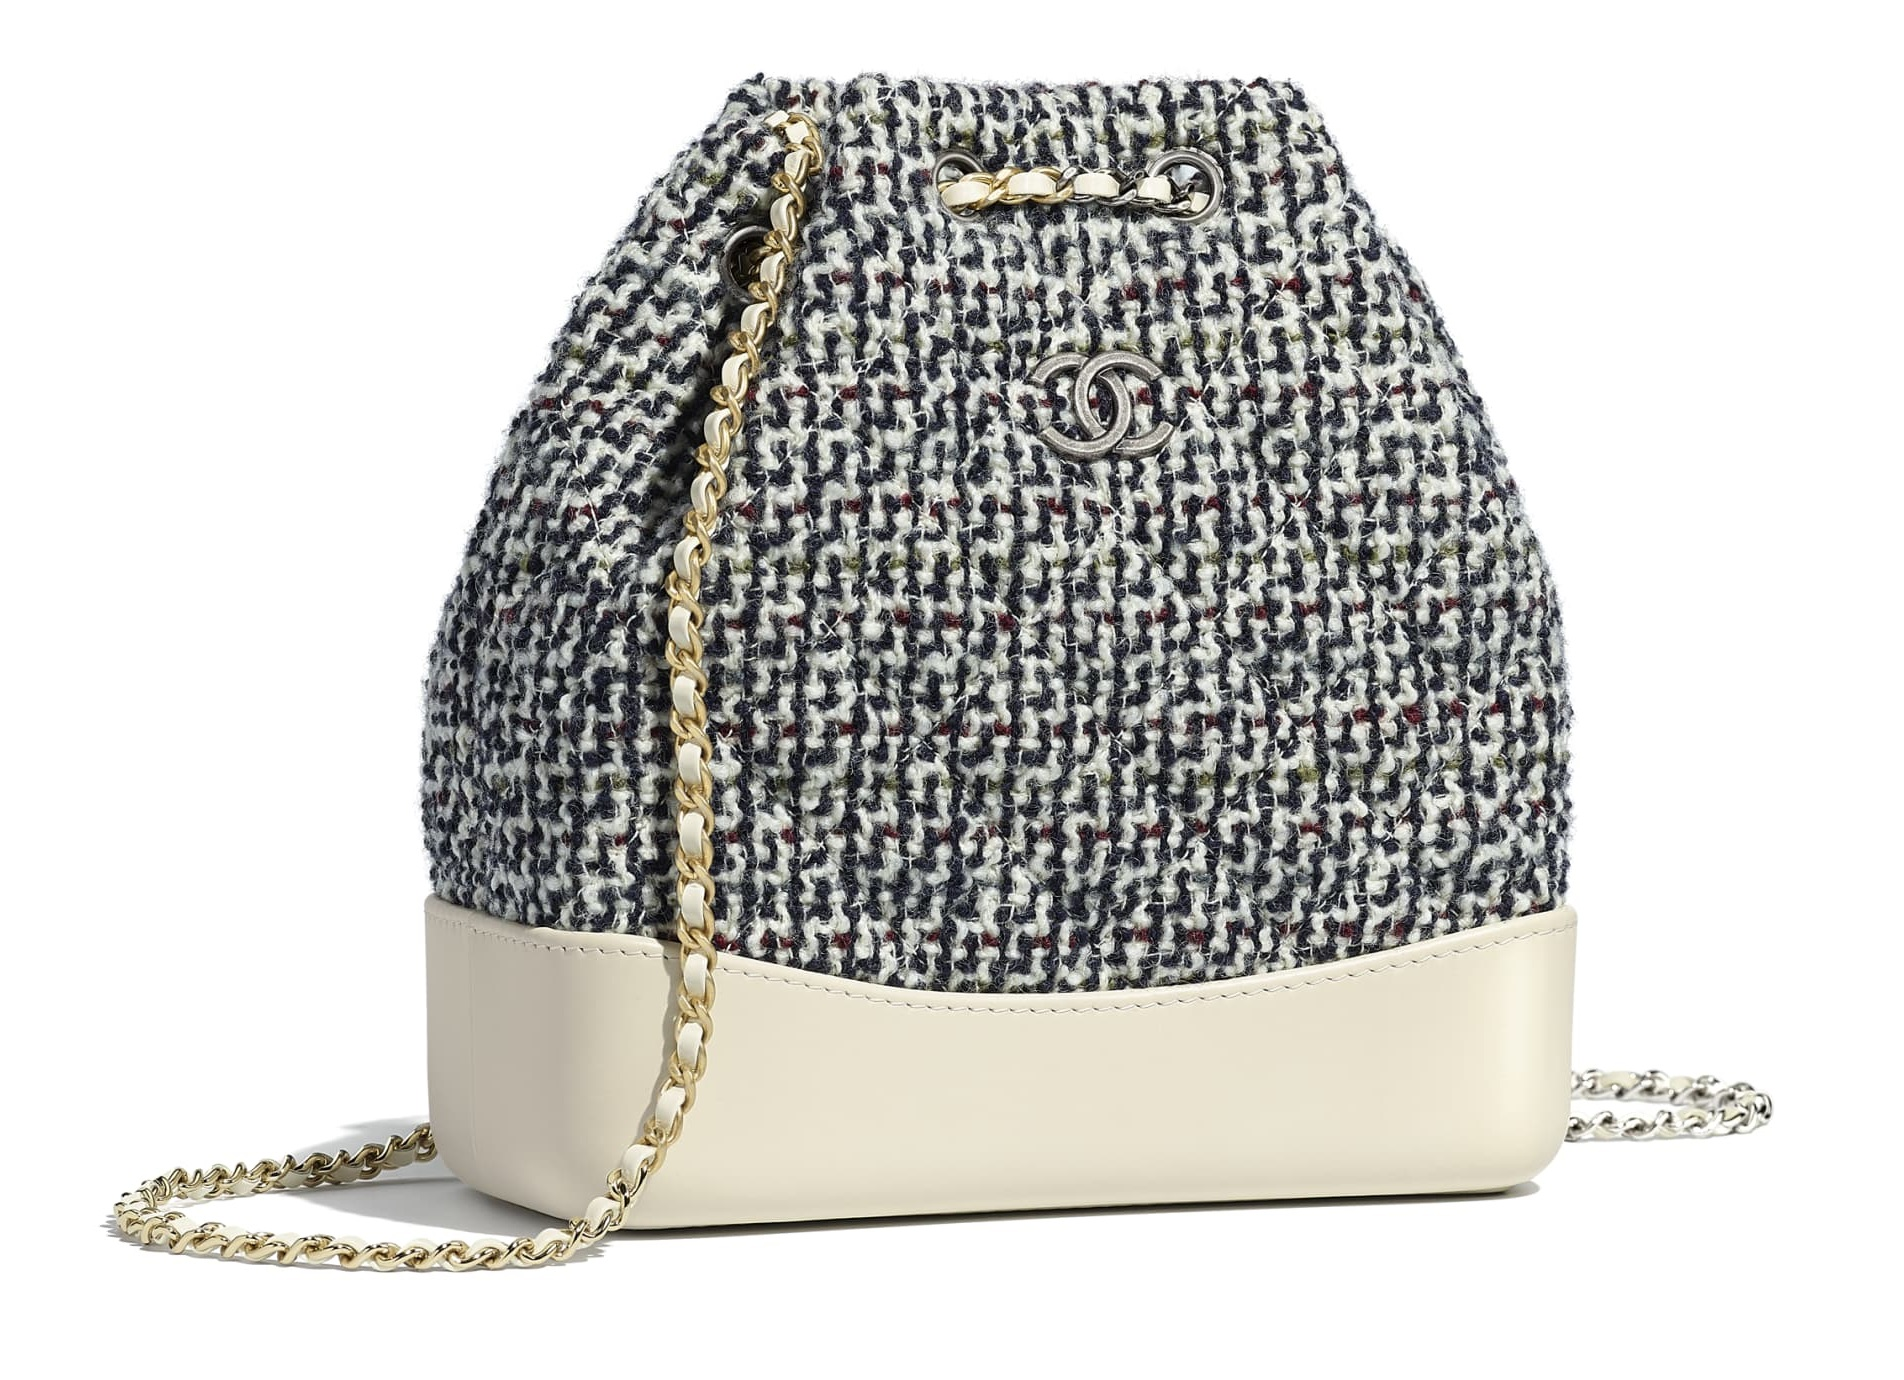 Zaino a secchiello Chanel in tweed tendenza inverno